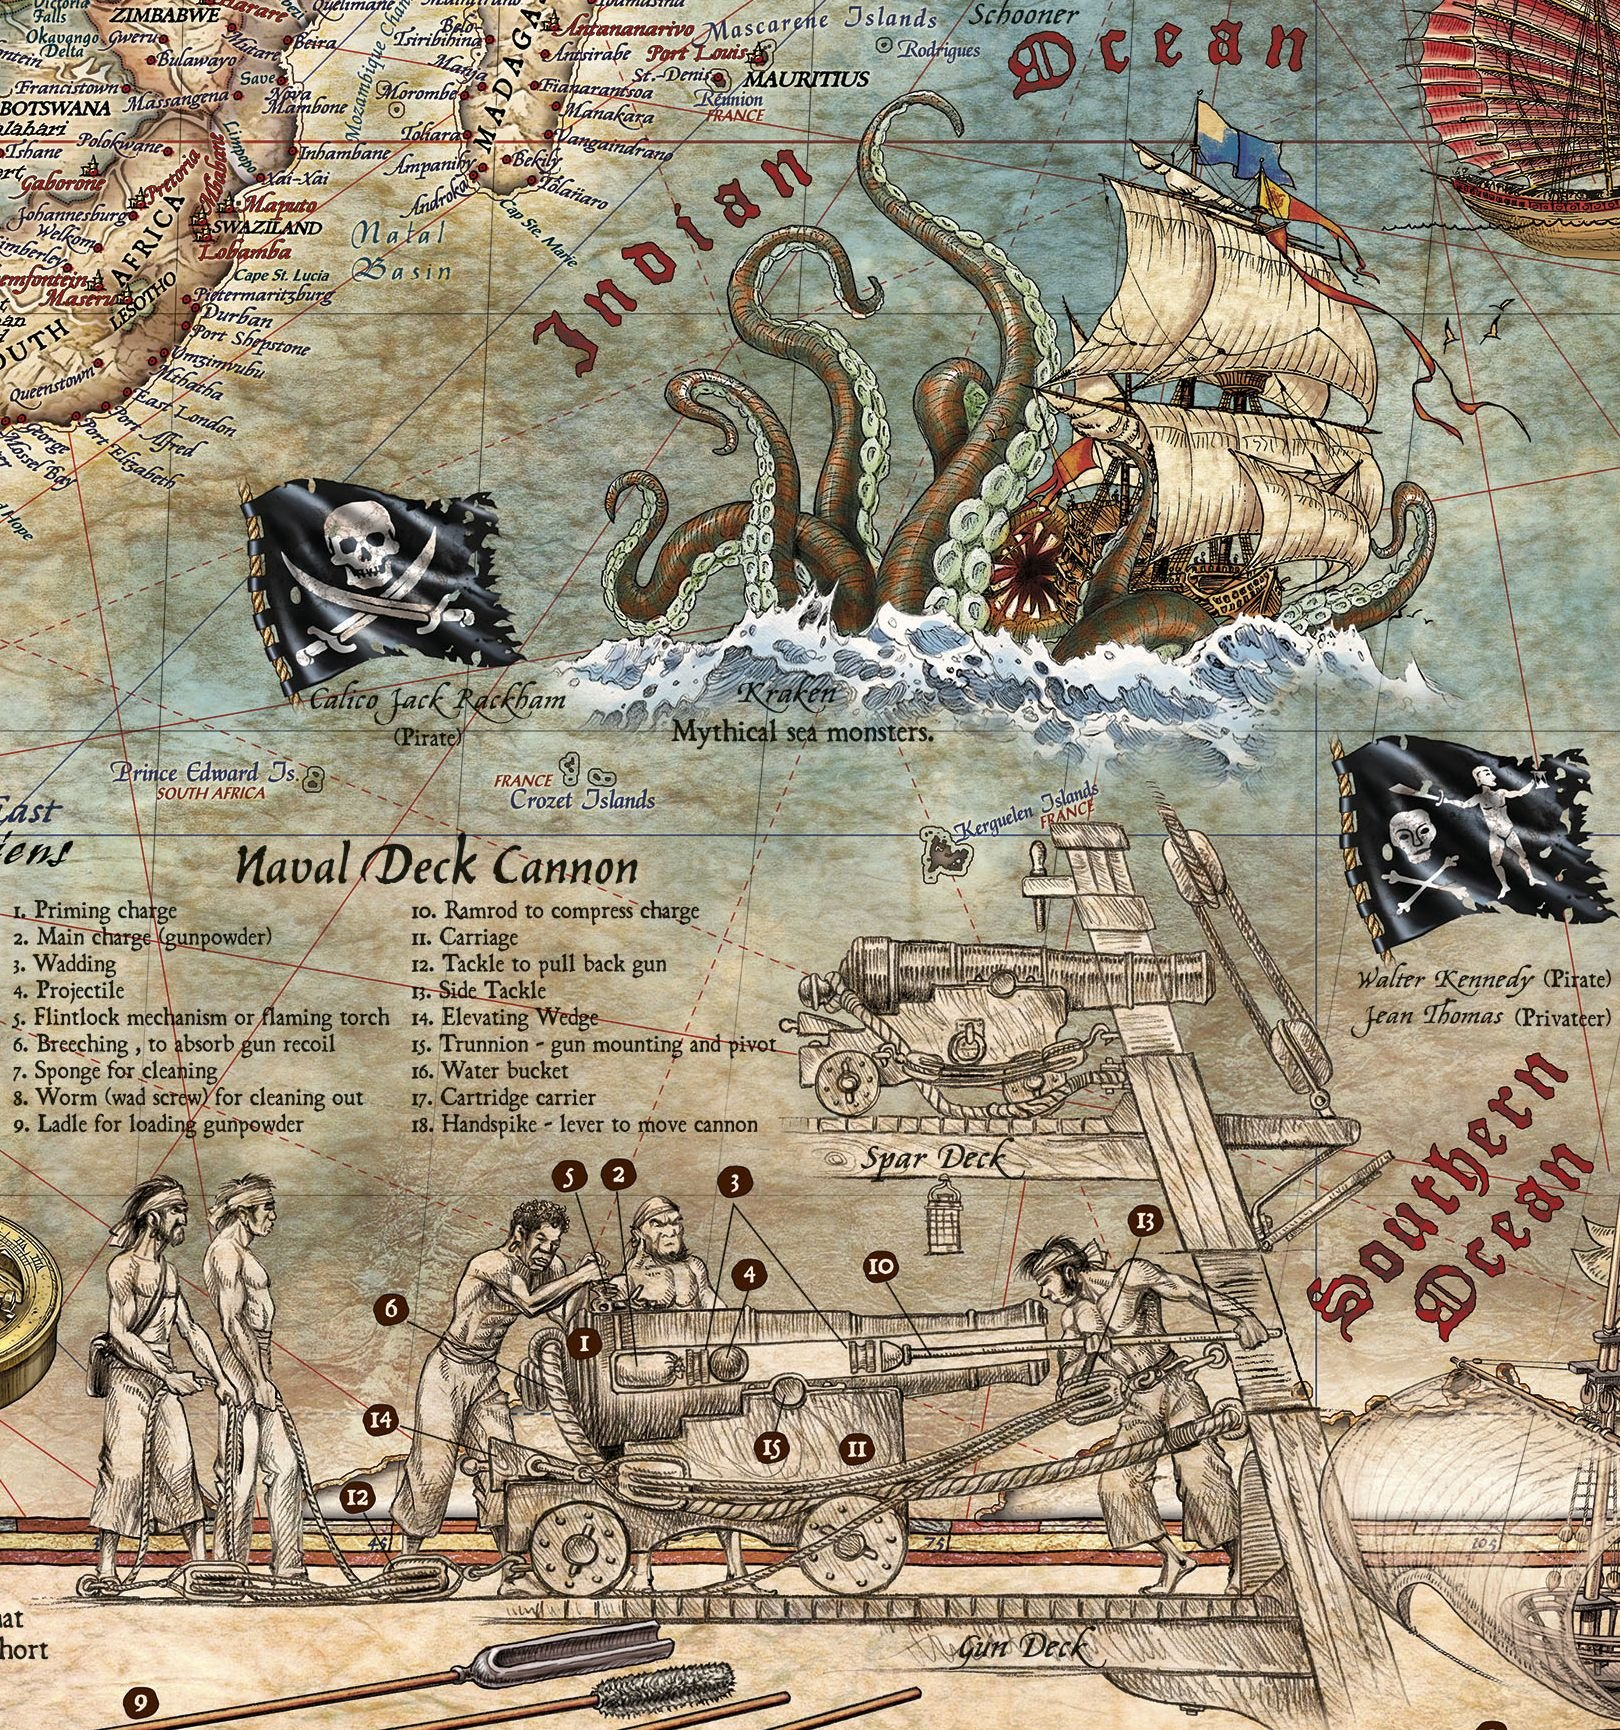 Pirate World Map.The Age Of Pirates Historical Map Poster Rajko Zigic 9781888216547